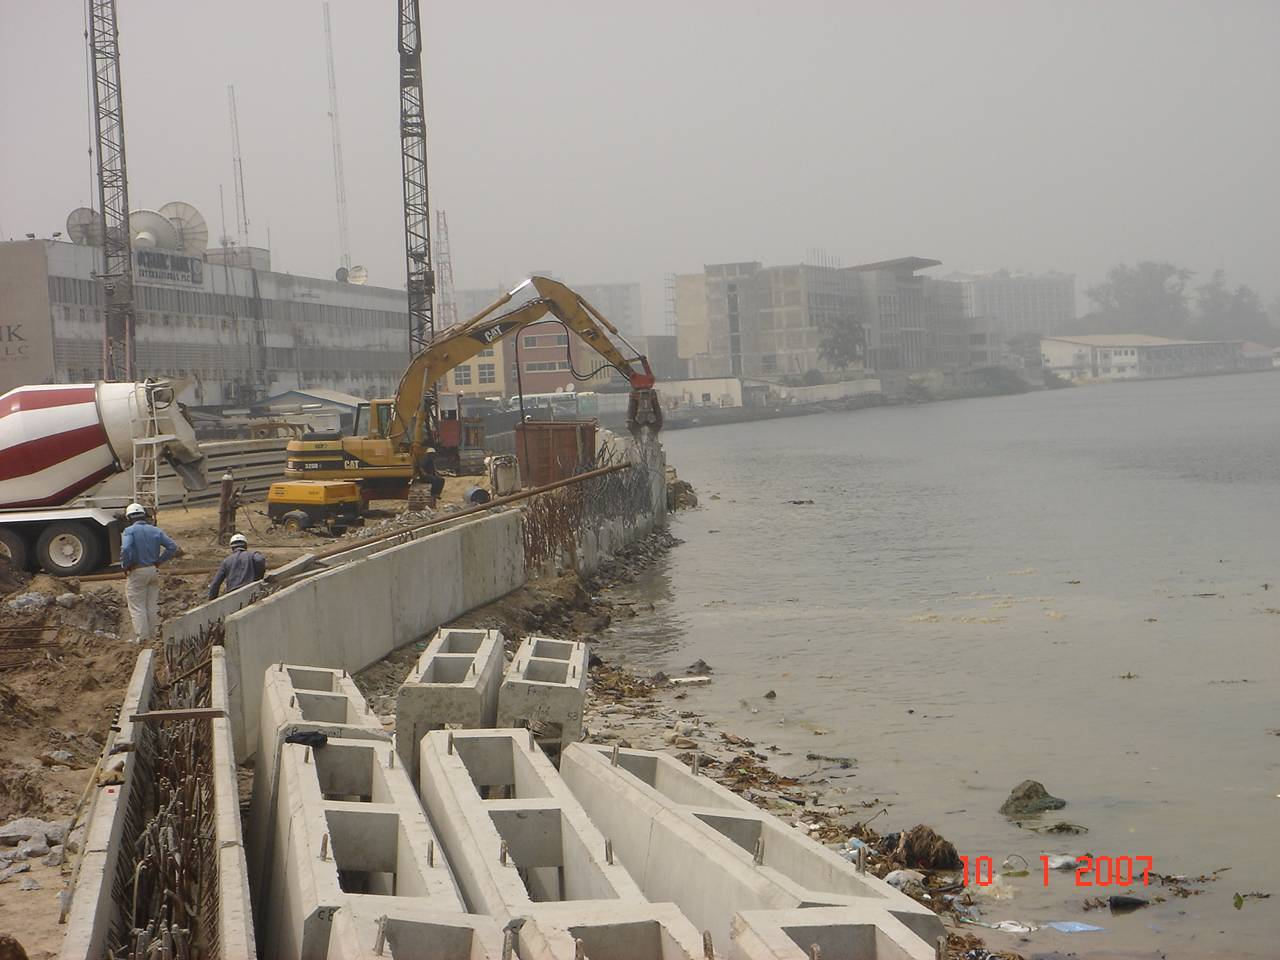 Shoring Line for Waves Project in Lagos - NIGERIA